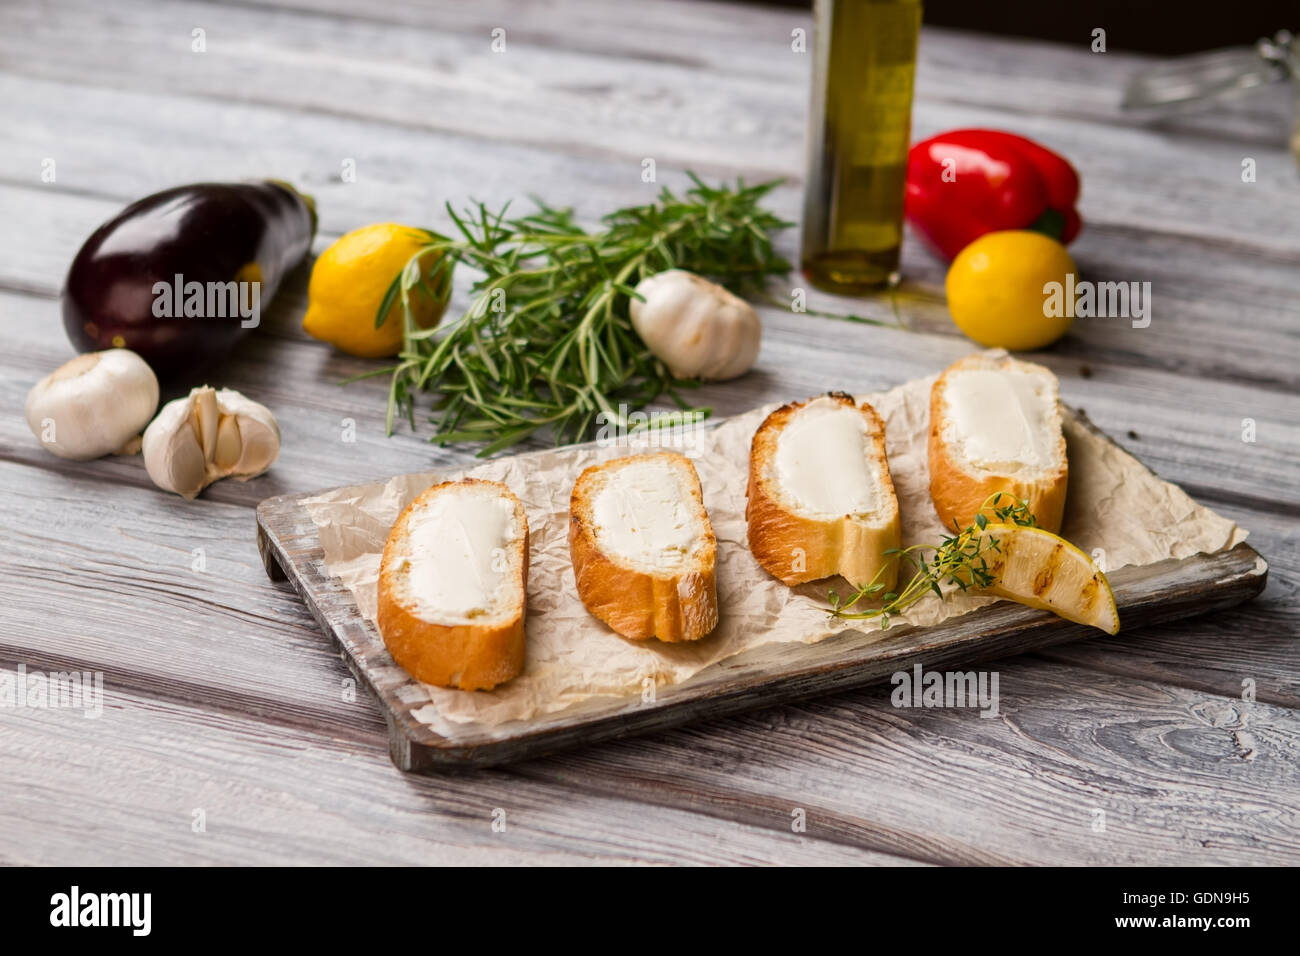 Baguette slices with butter. - Stock Image